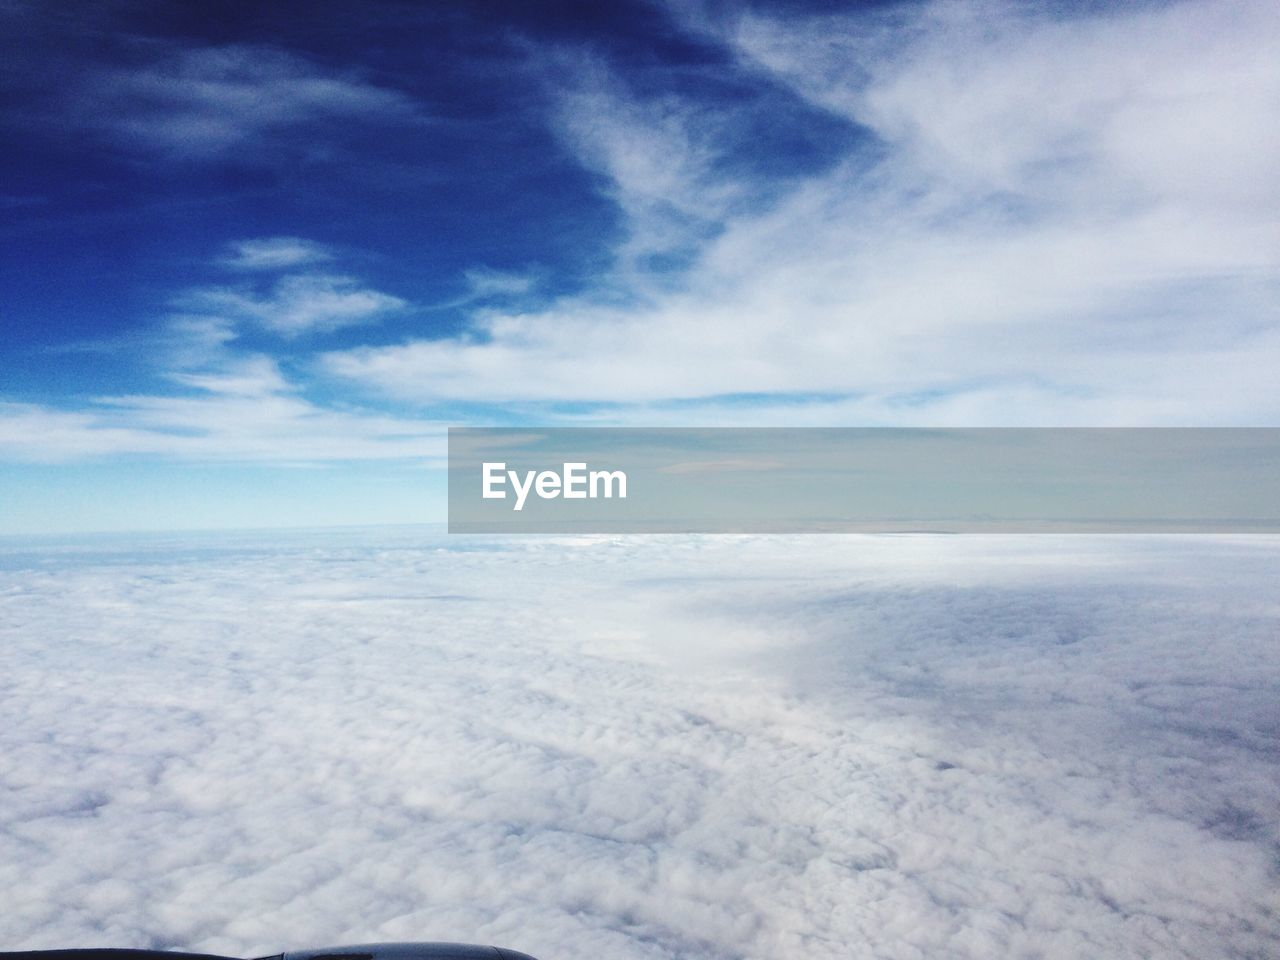 SCENIC VIEW OF CLOUDS IN SKY DURING WINTER